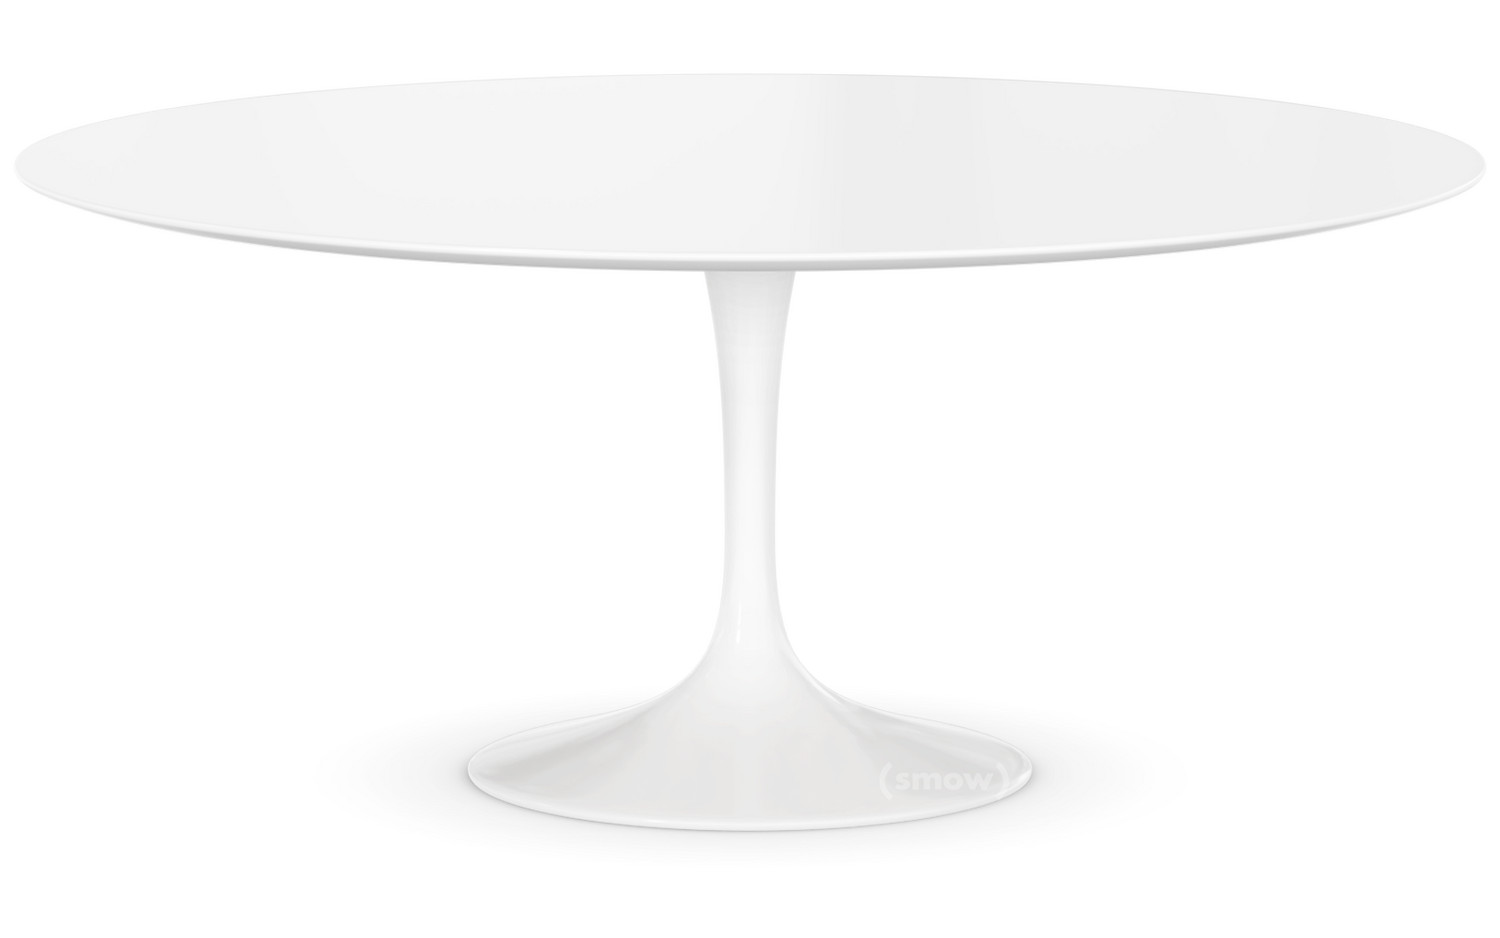 Saarinen Round Sofa Table Large Height 38 39cm ø 91 Cm